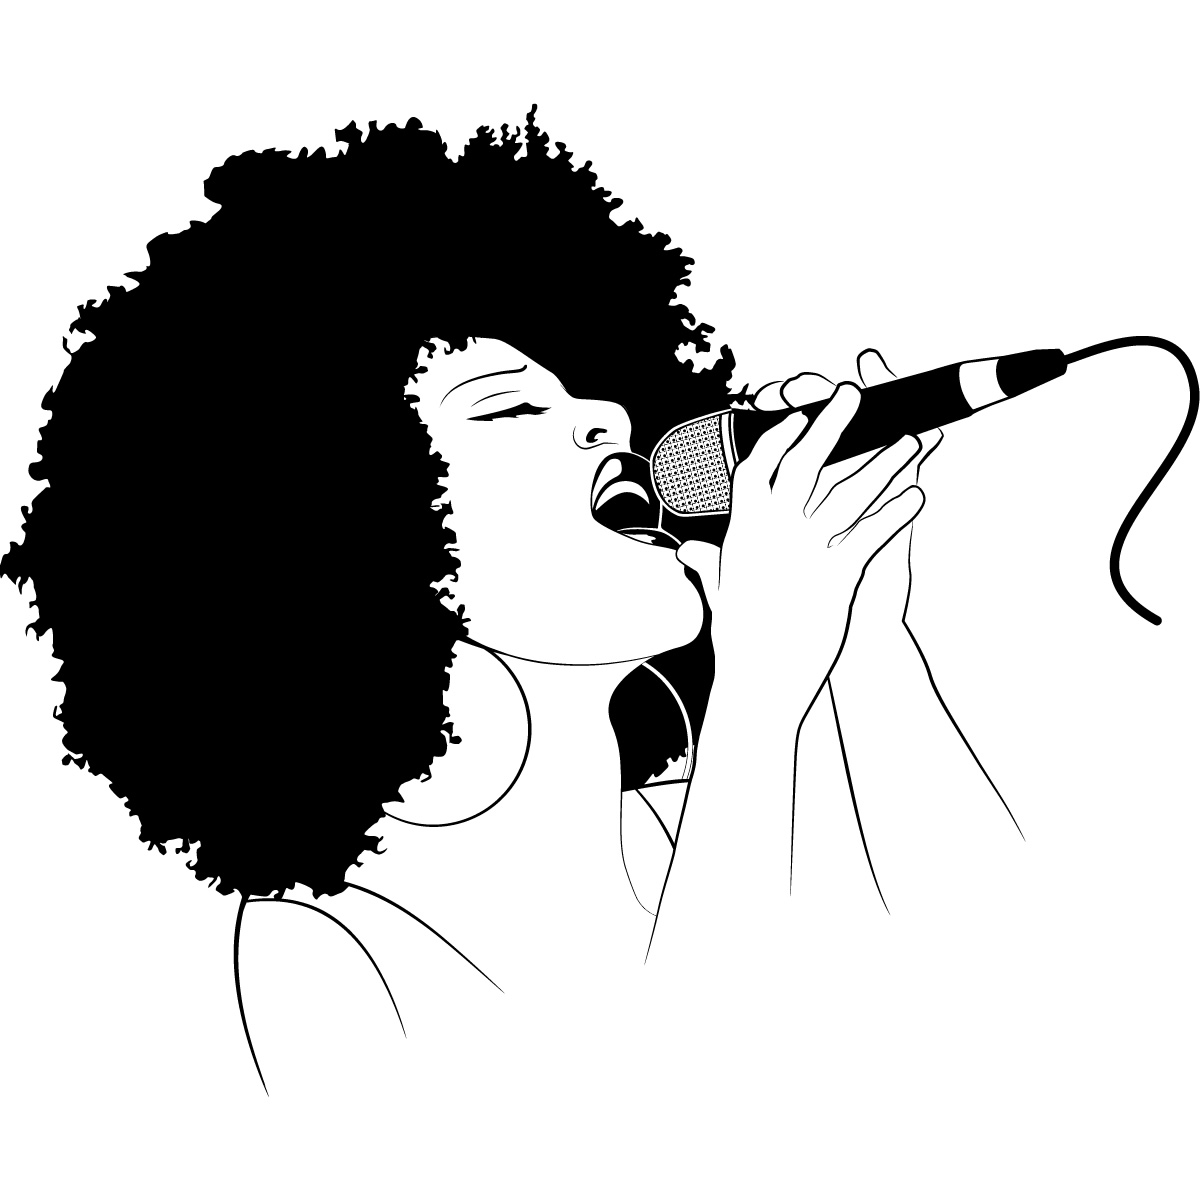 Singer clipart cute Singer China Silhouette Singer Silhouette